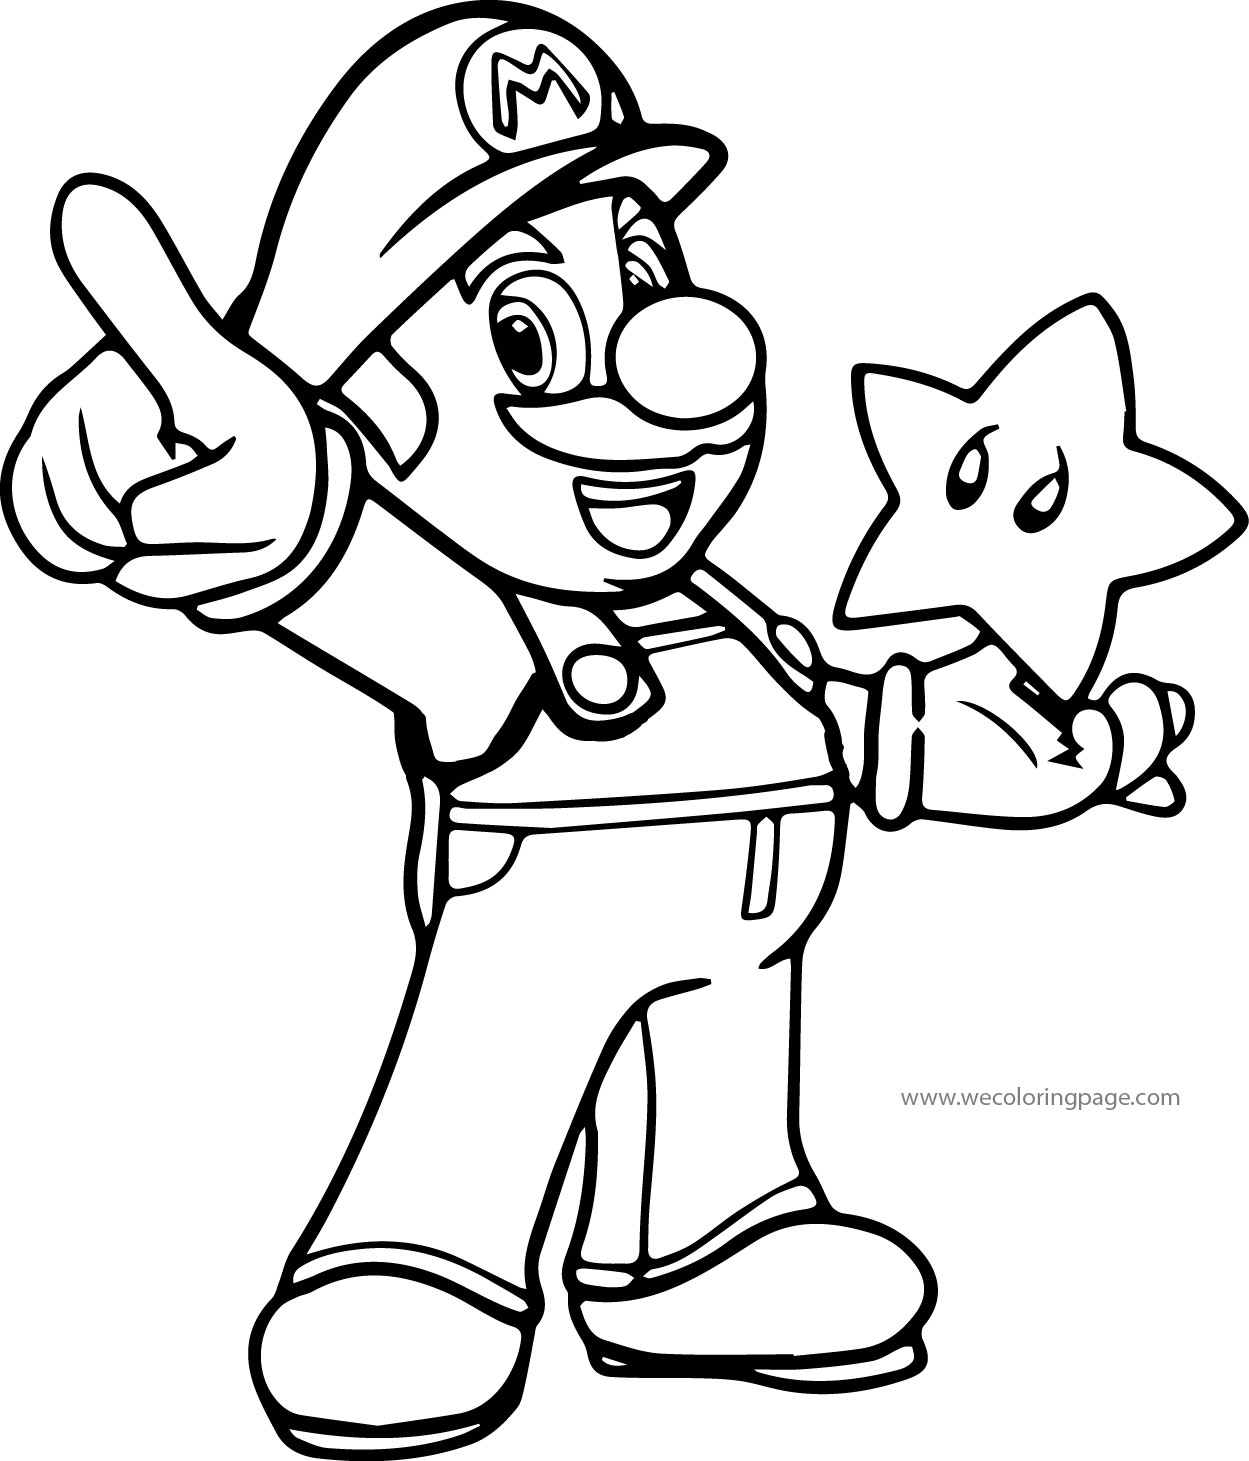 mario color page super mario coloring page